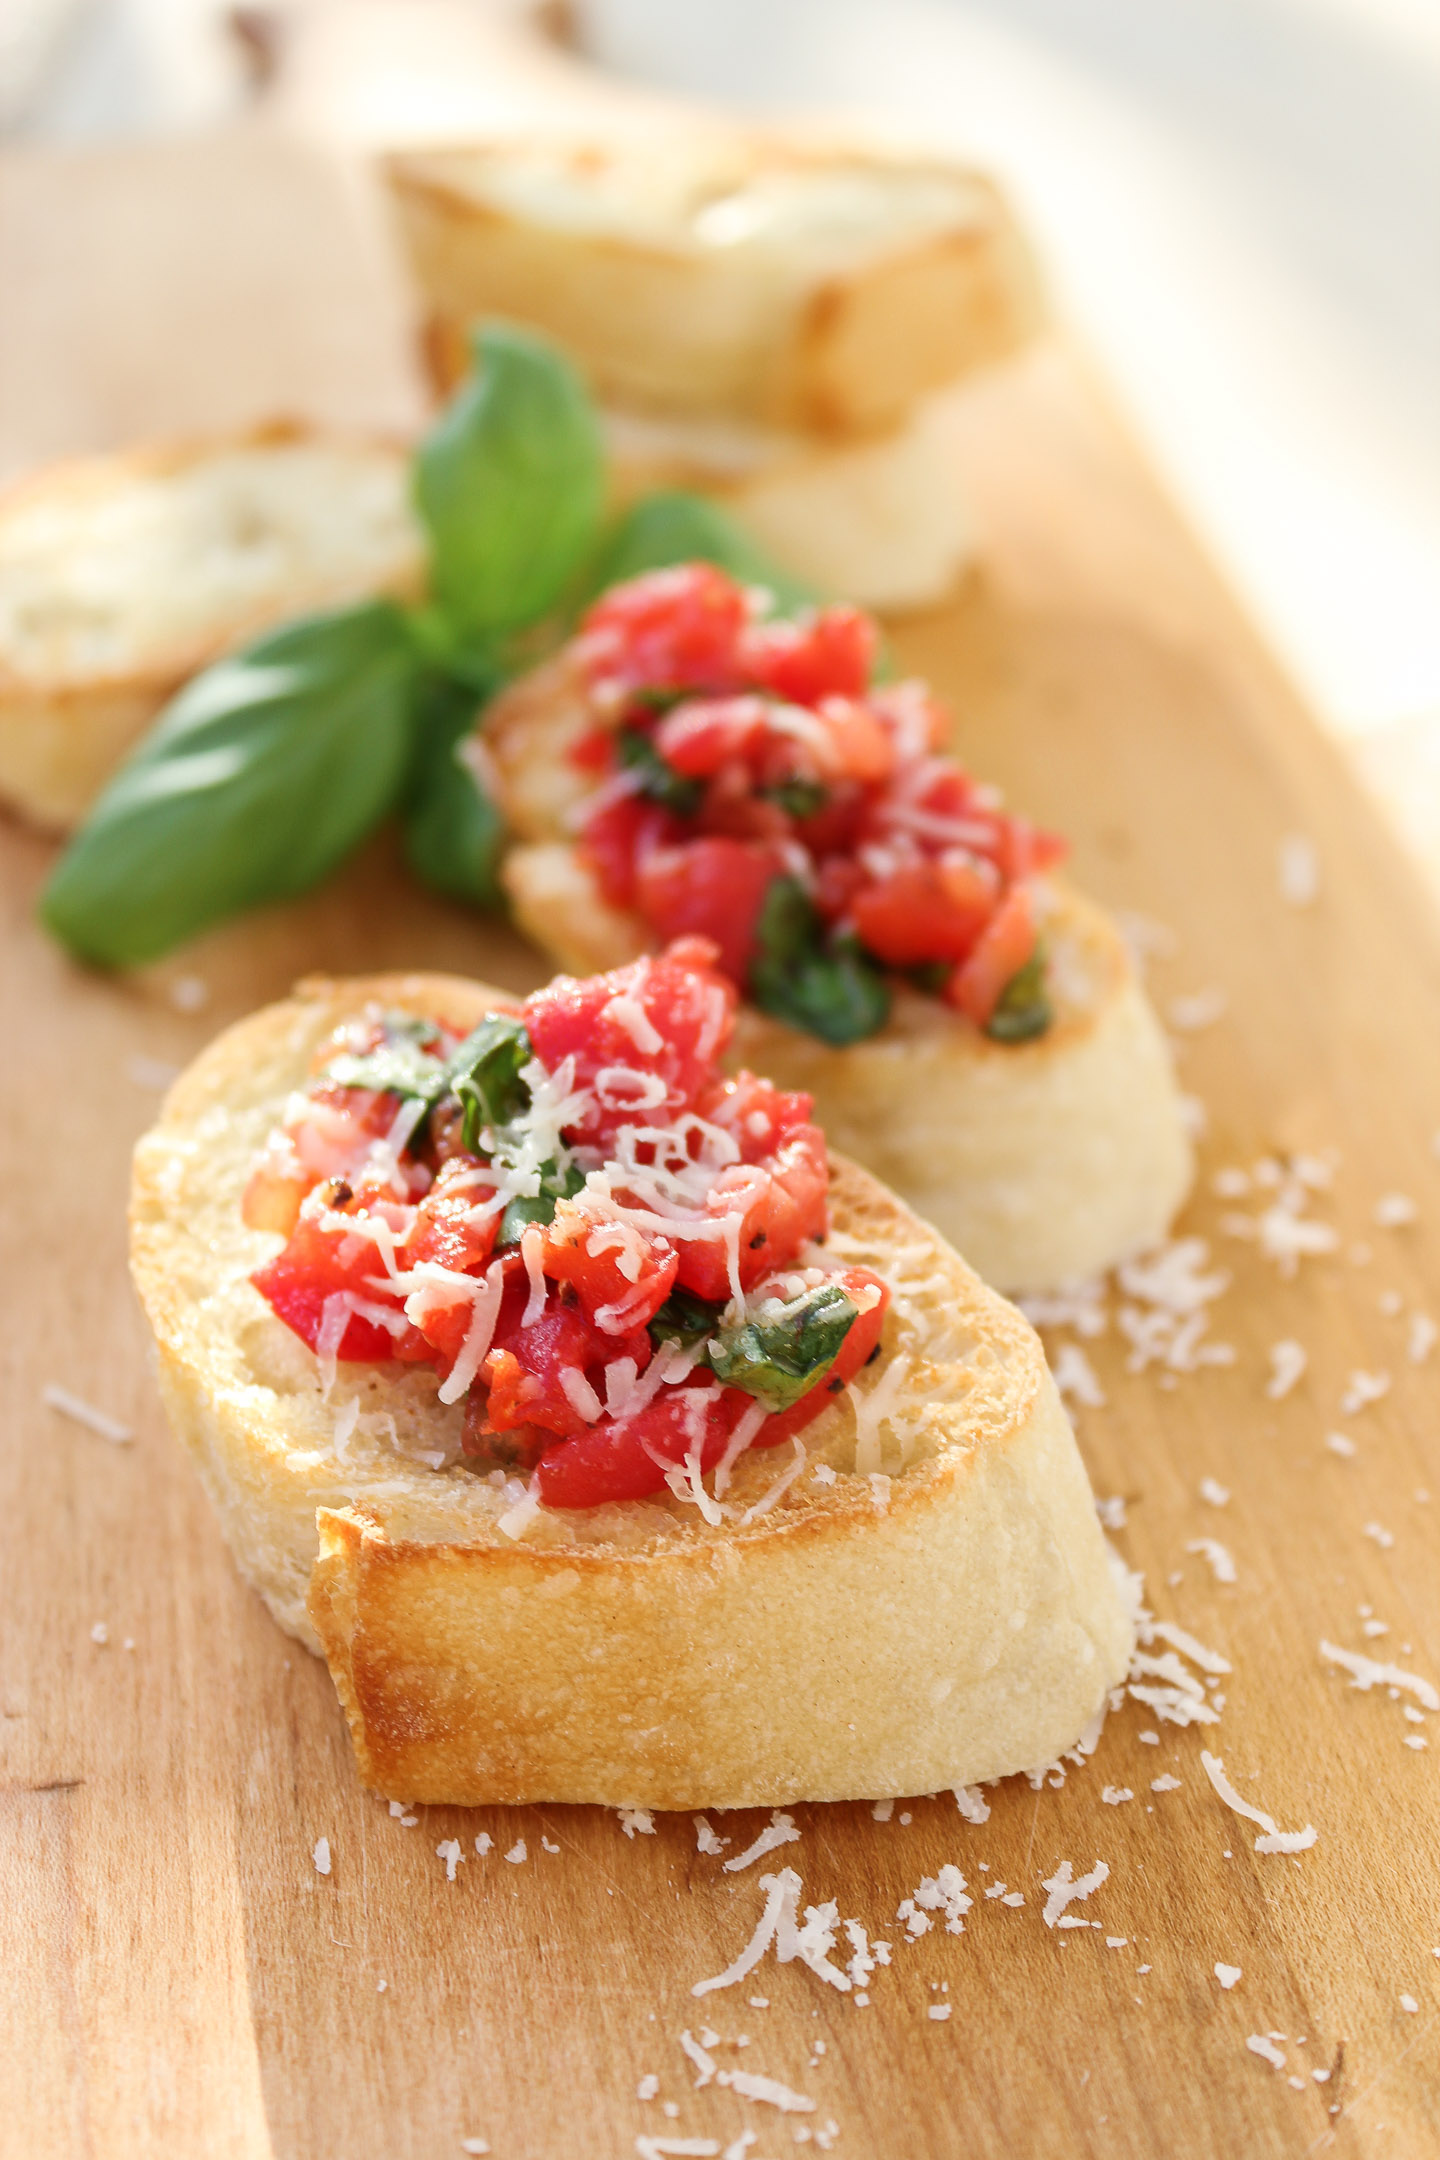 Sliced baguette topped with bruschetta mixture.